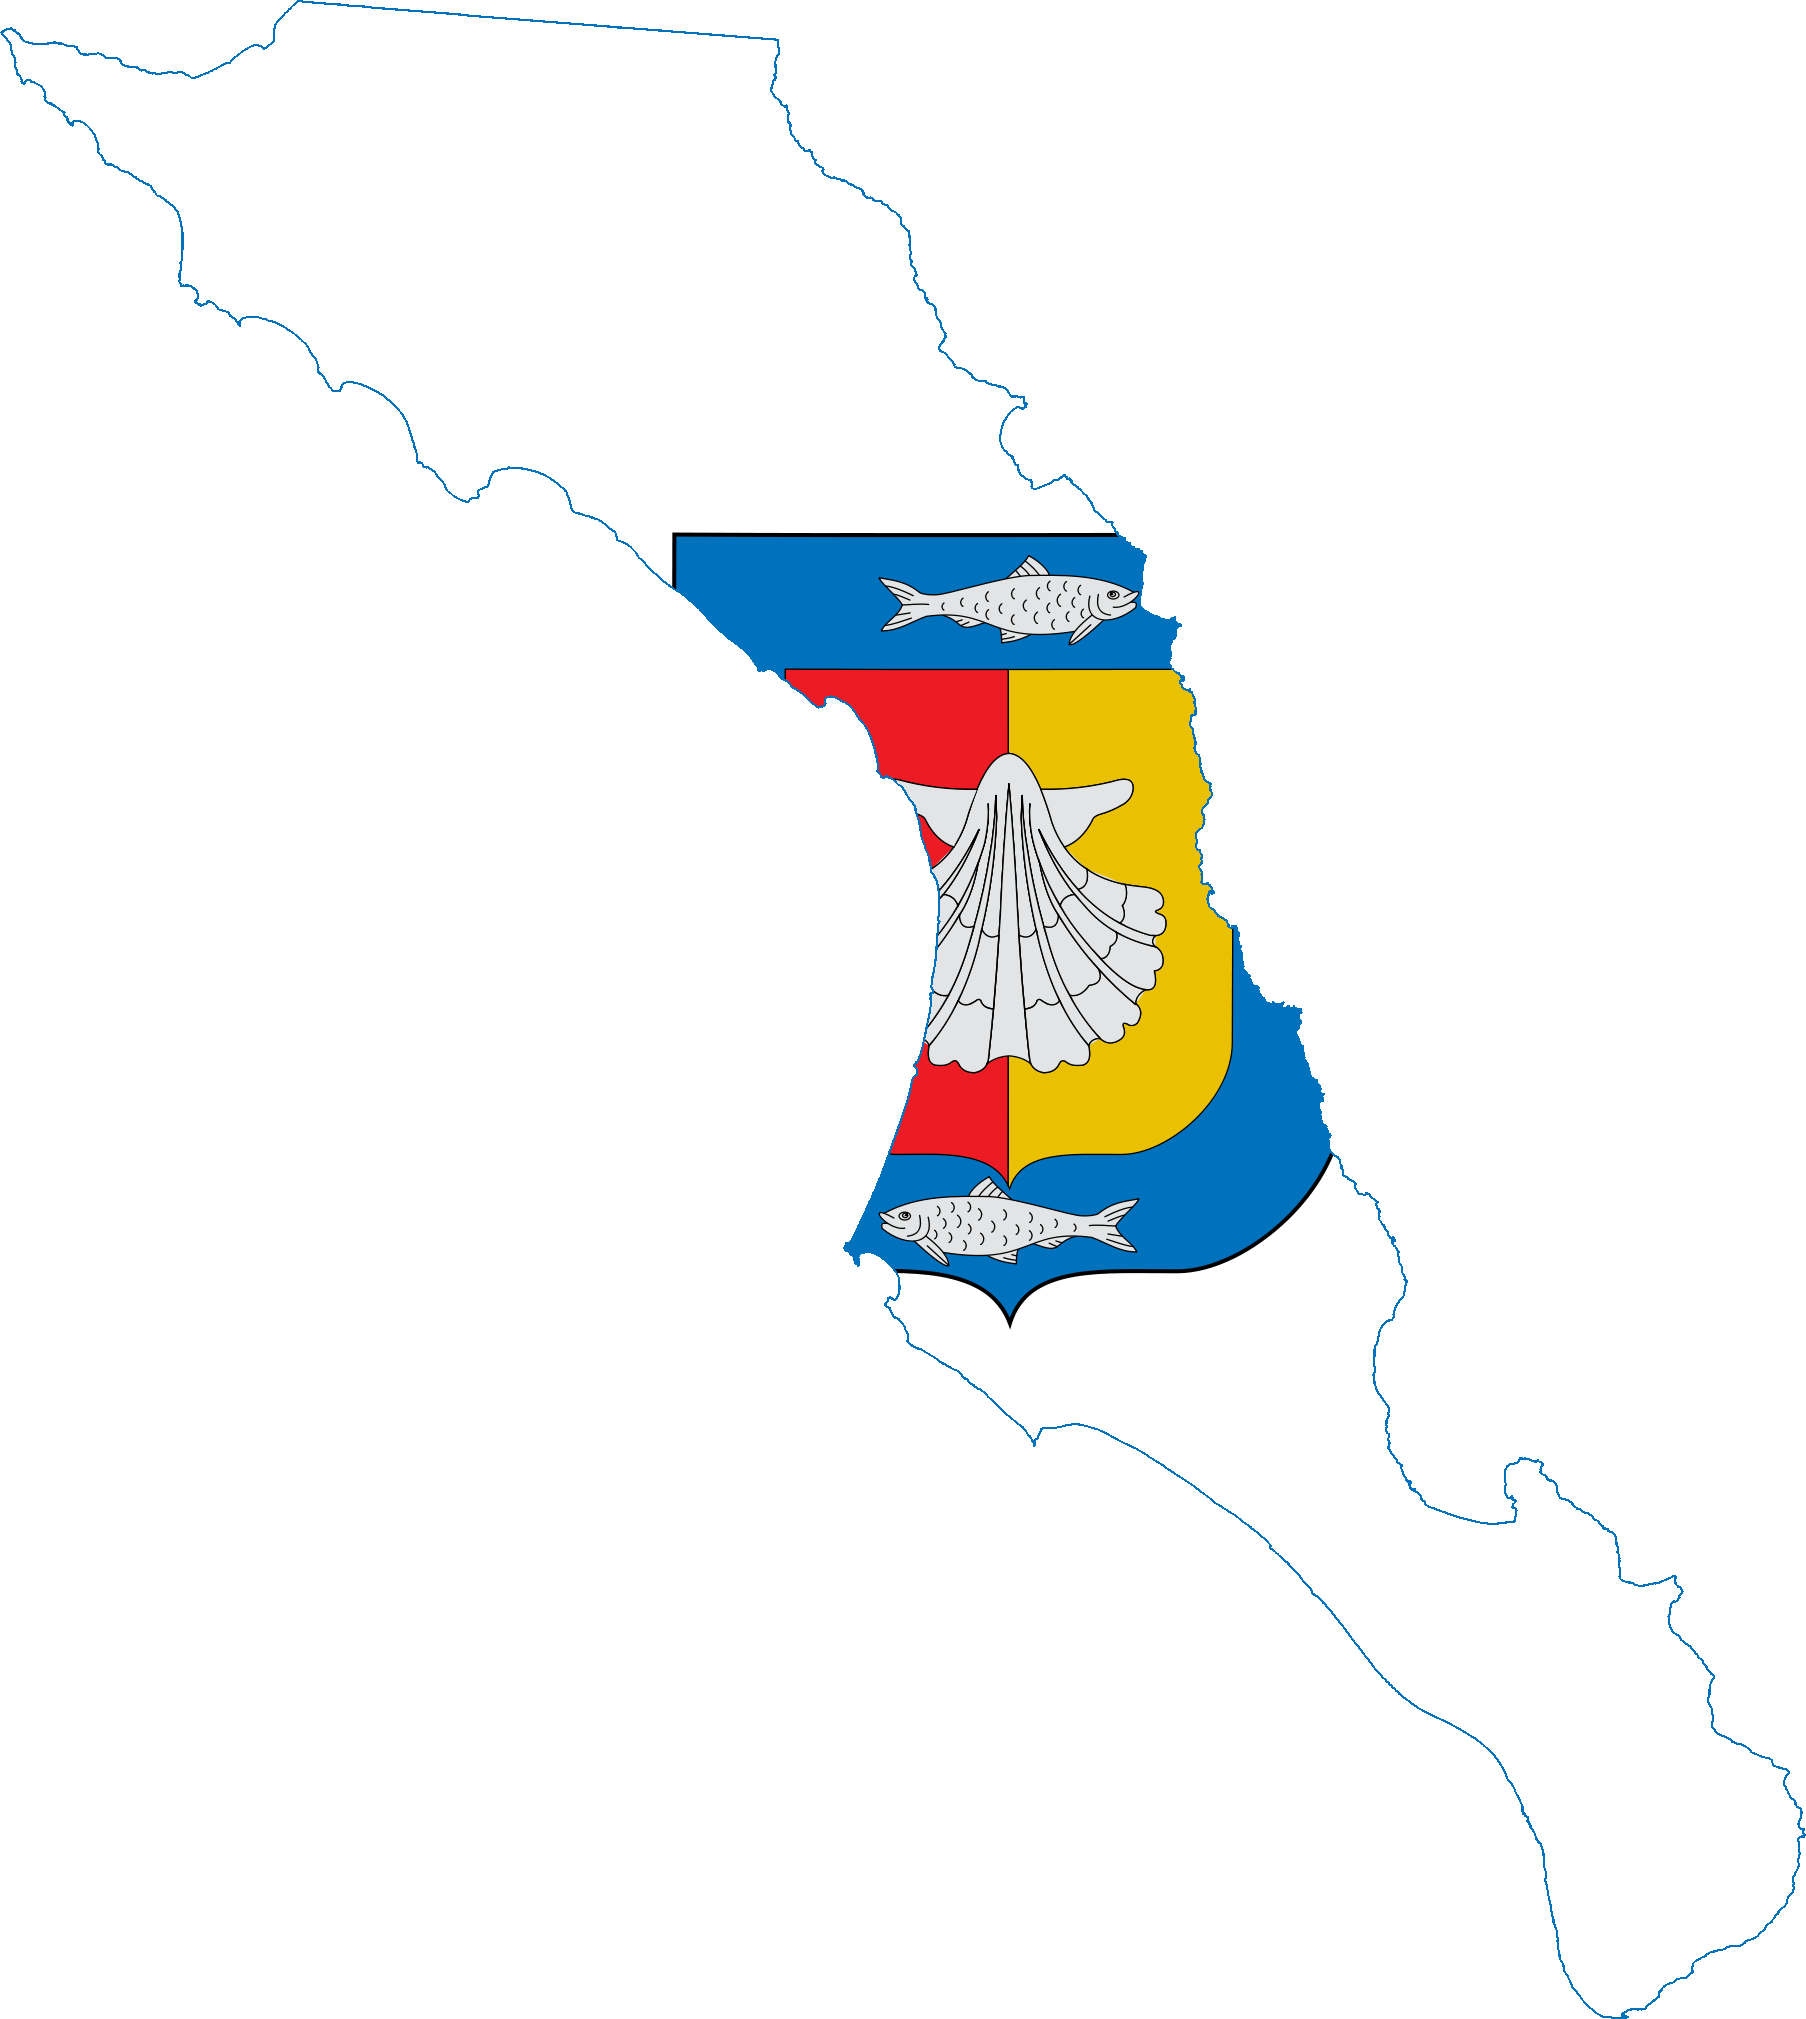 File:Baja California Sur Flag Map.png - Wikimedia Commons